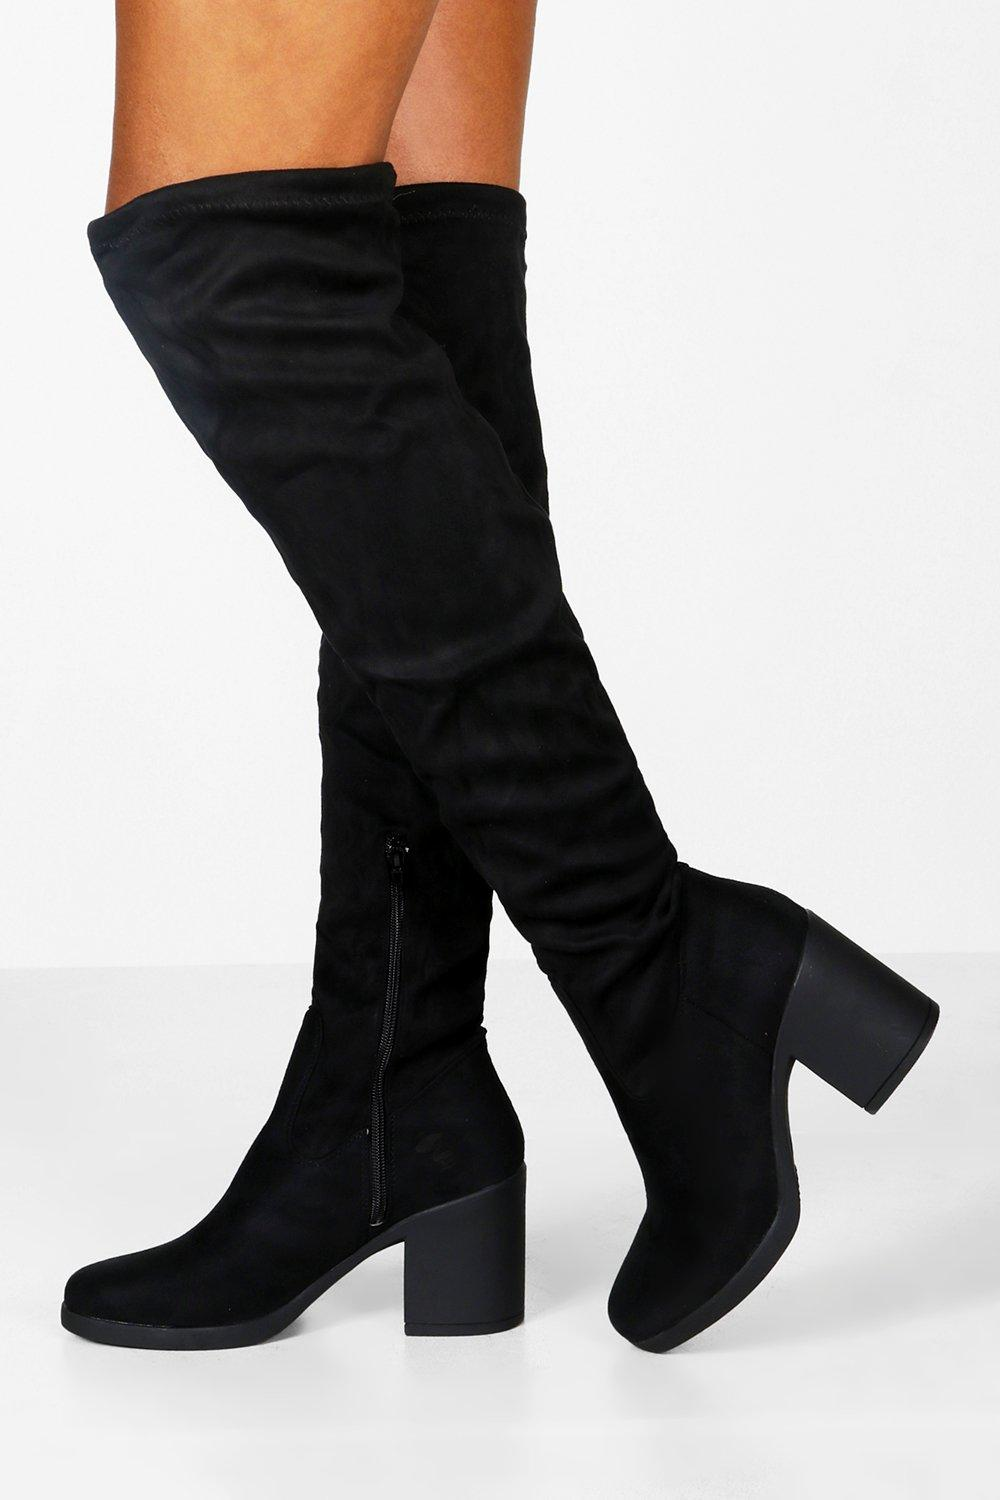 Boots Chunky Over the Knee Boots